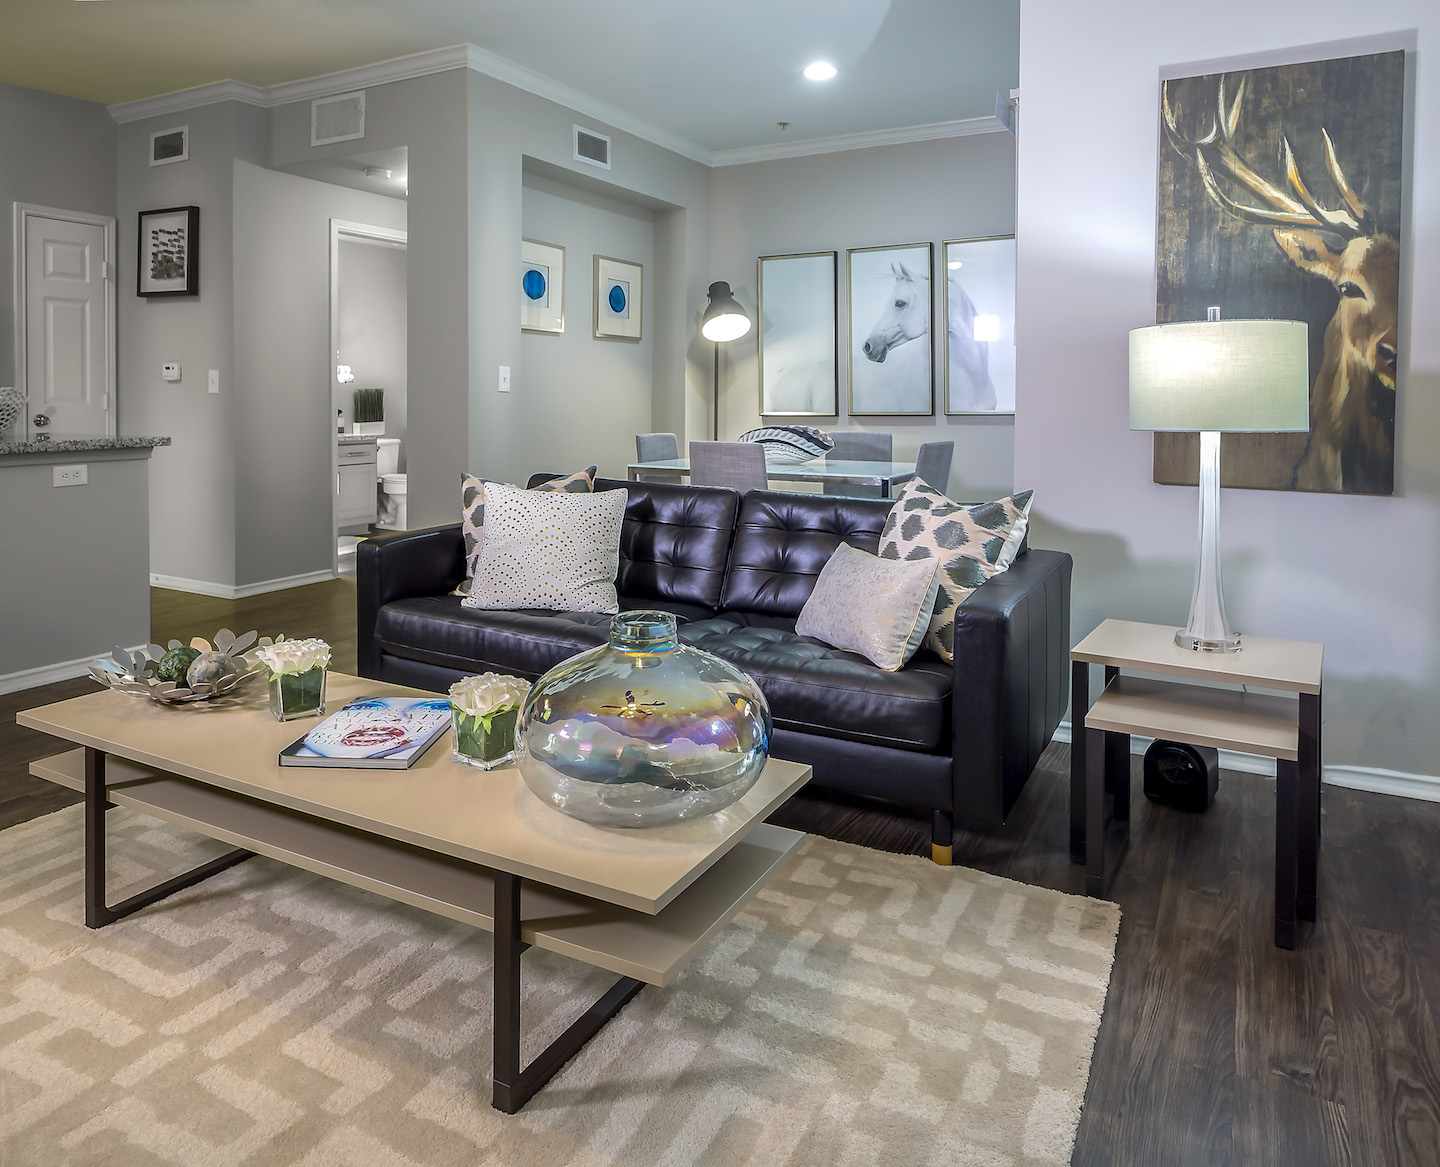 One-Bedroom Apartments at The Link, a Community of Luxury Apartments in Houston, Texas